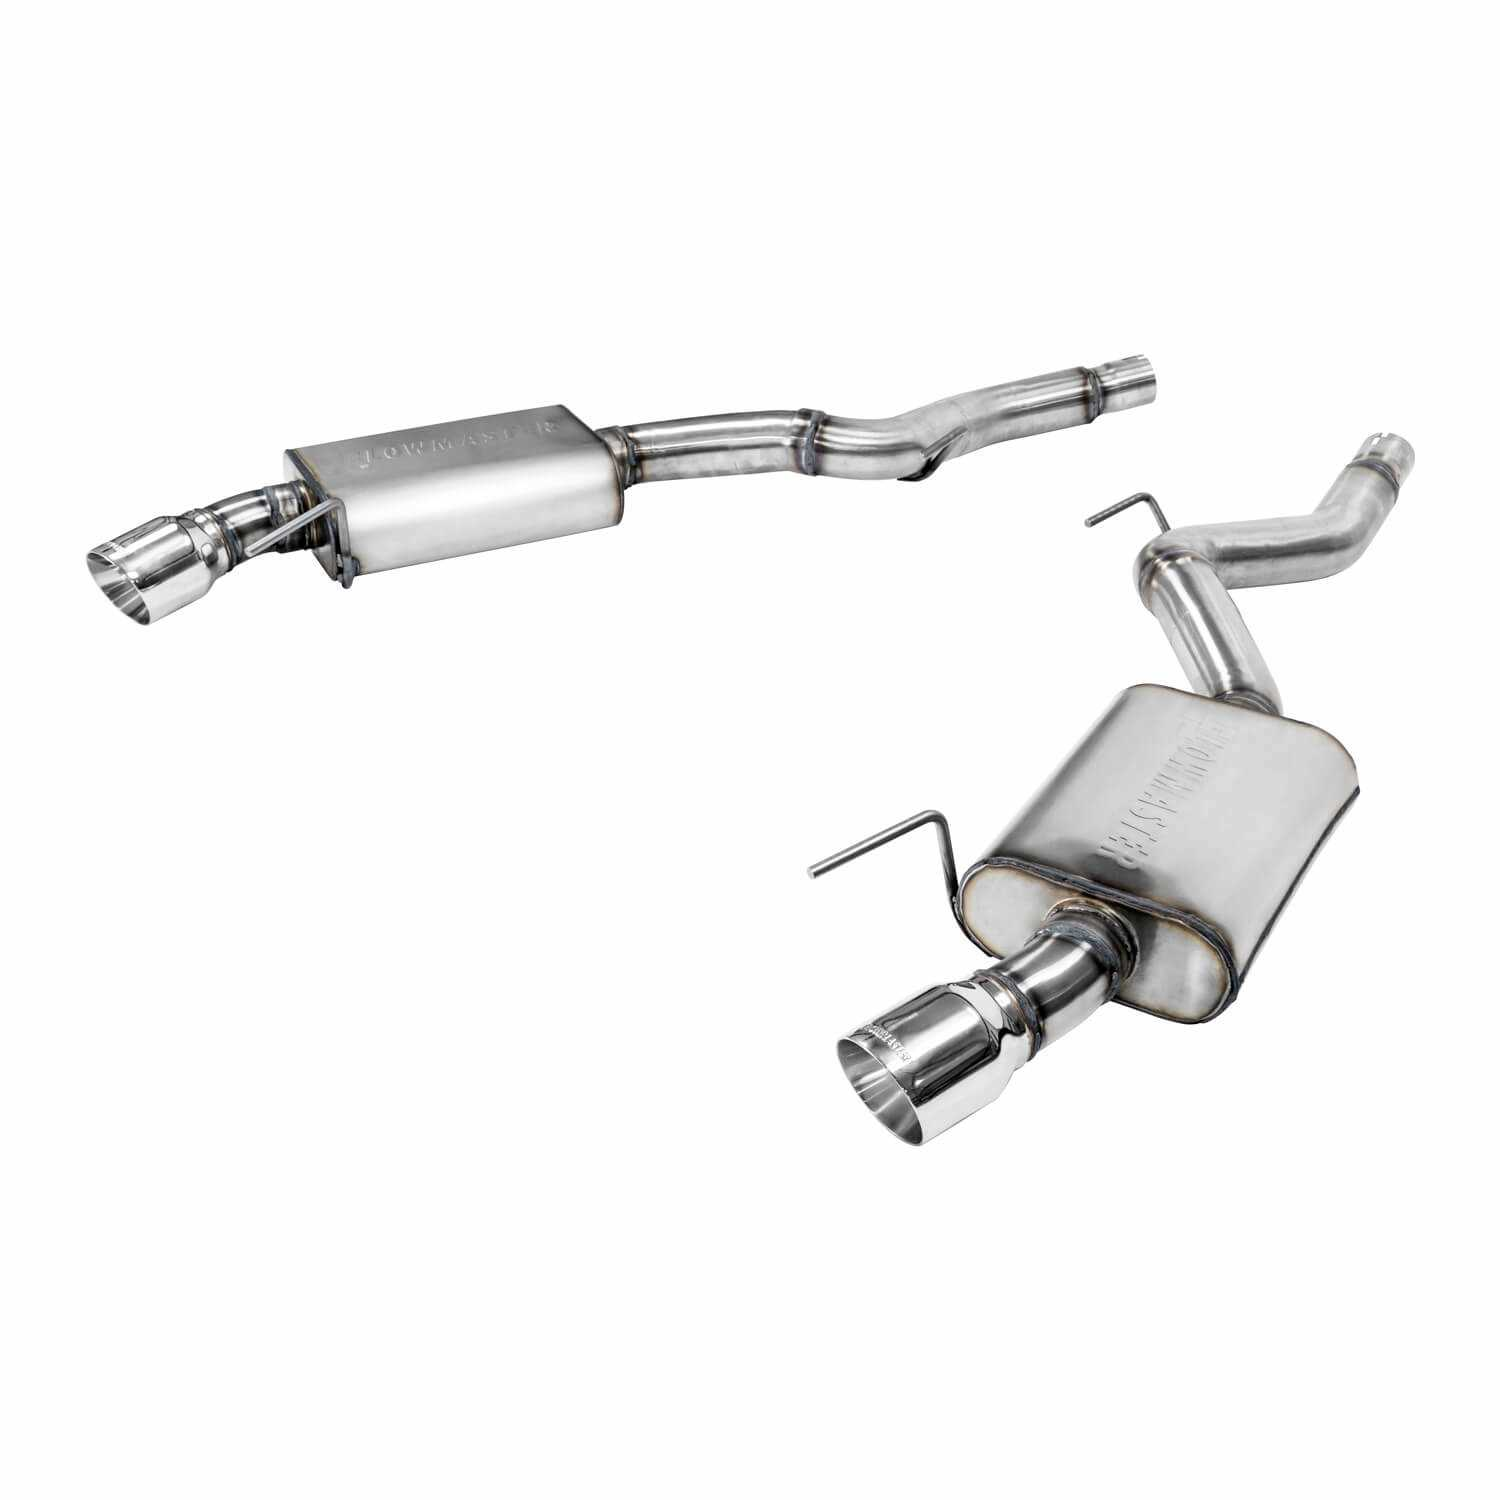 717749 Flowmaster FlowFX Axle Back Exhaust System